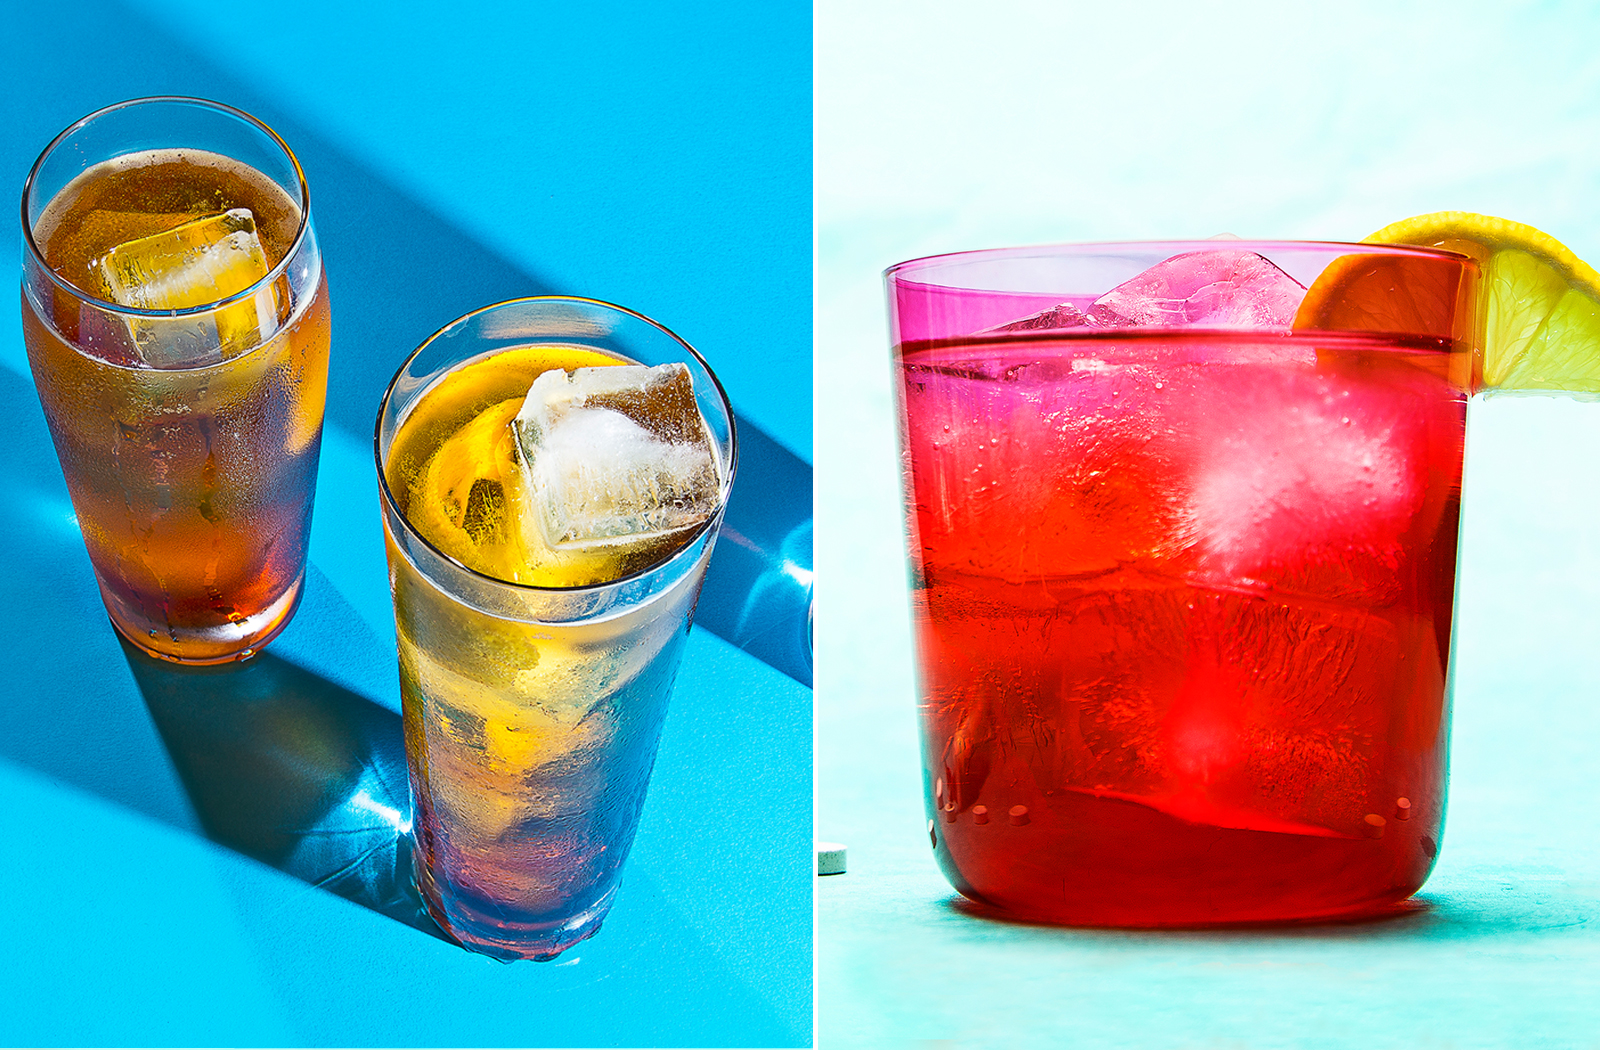 Colorful-Cocktails-Katie-B-Foster-Photography.jpg